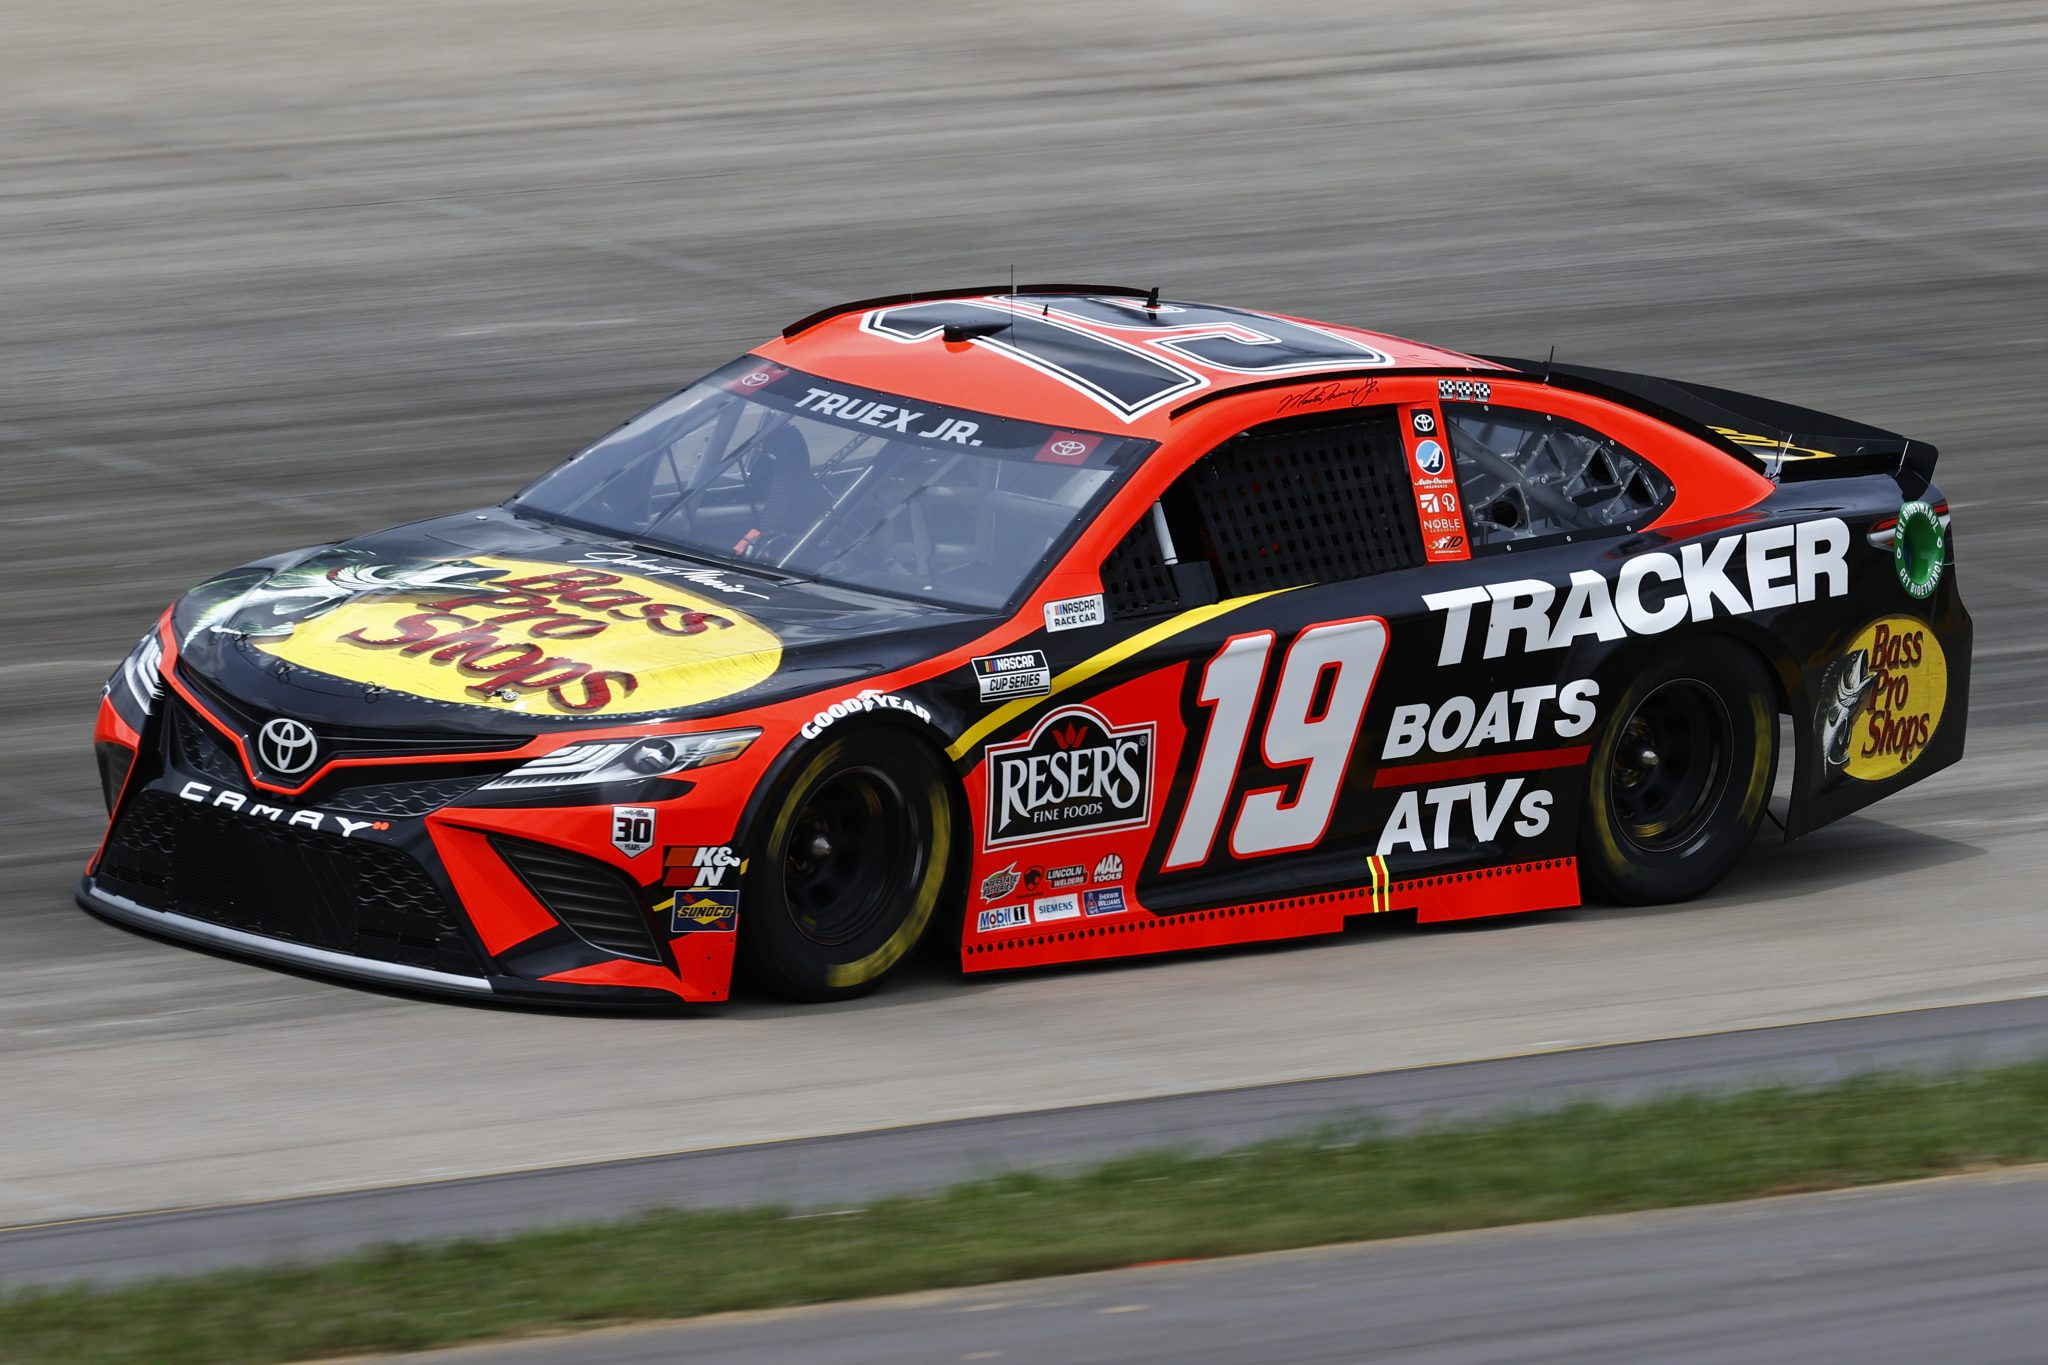 LEBANON, TENNESSEE - JUNE 19: Martin Truex Jr., driver of the #19 Bass Pro Toyota, drives during practice for the NASCAR Cup Series Ally 400 at Nashville Superspeedway on June 19, 2021 in Lebanon, Tennessee. (Photo by Jared C. Tilton/Getty Images)   Getty Images